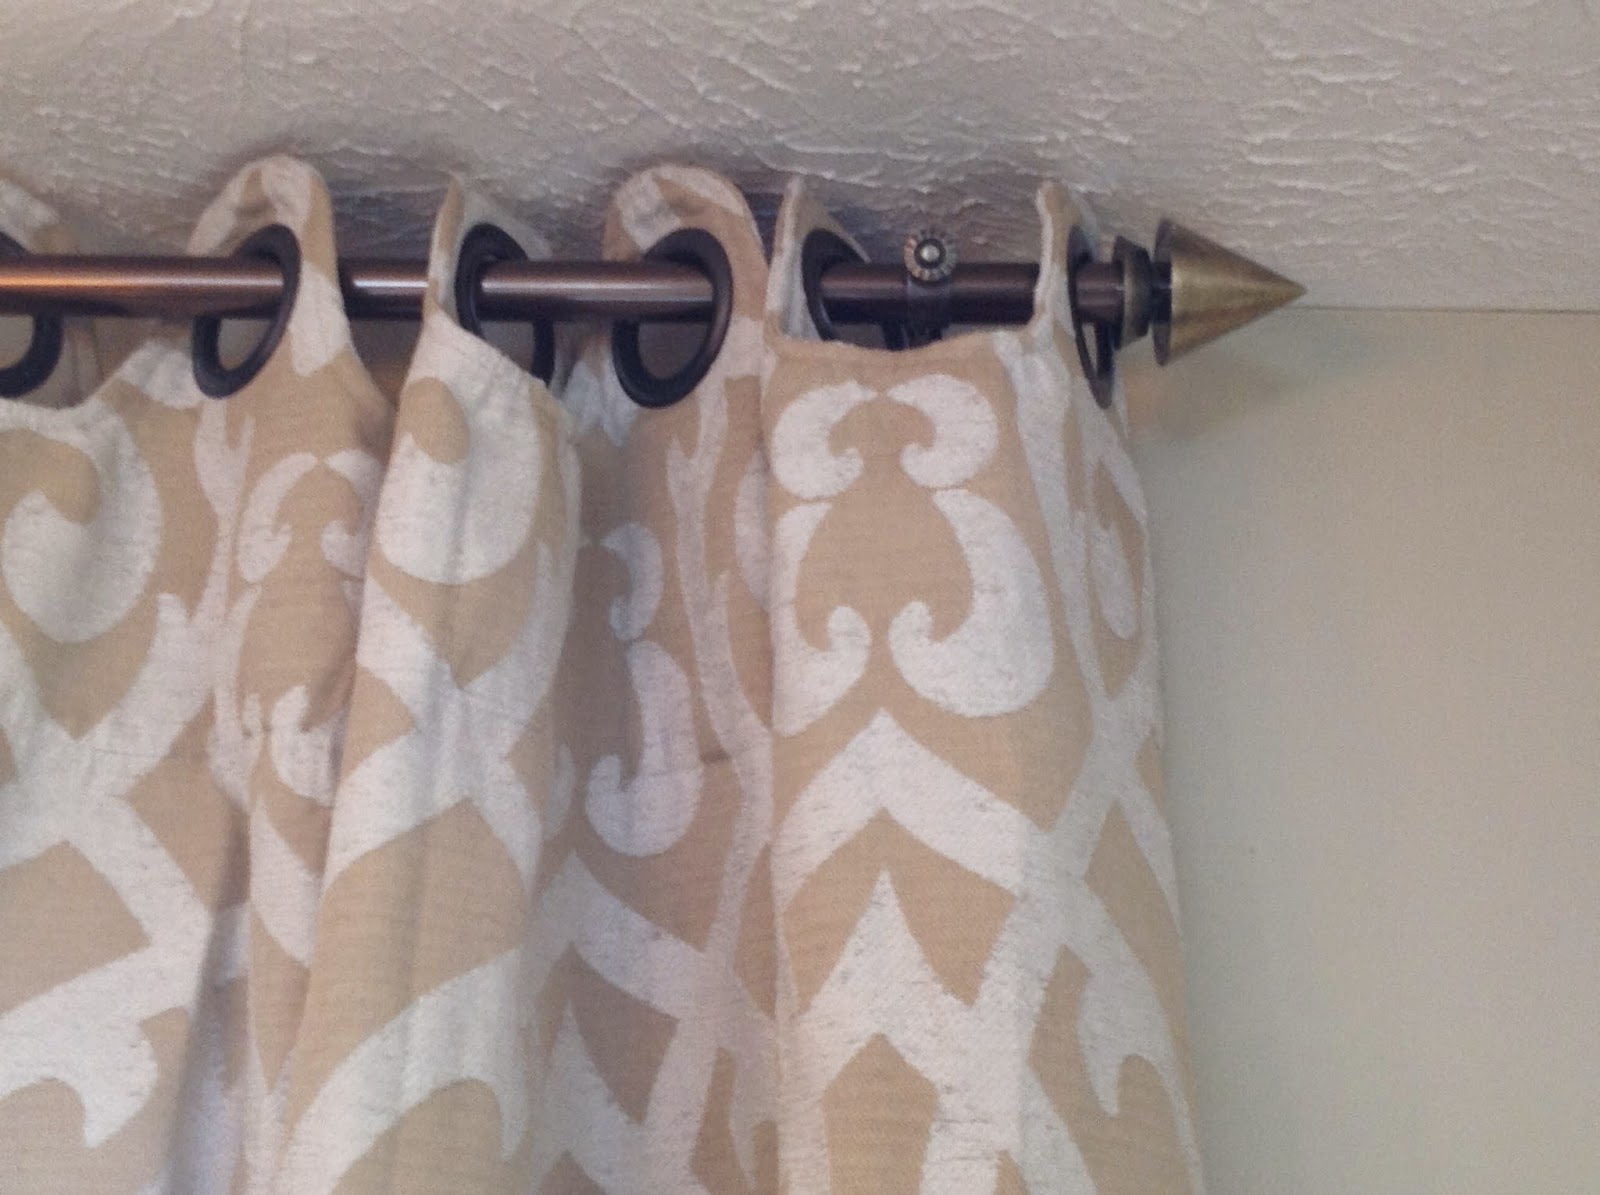 Ha ha hanging curtains interior design - I Really Love The New Rods That We Put Up Although I May Need To Install A Neon Sign Pointing Toward Them So That Guests Will Take Note Haha